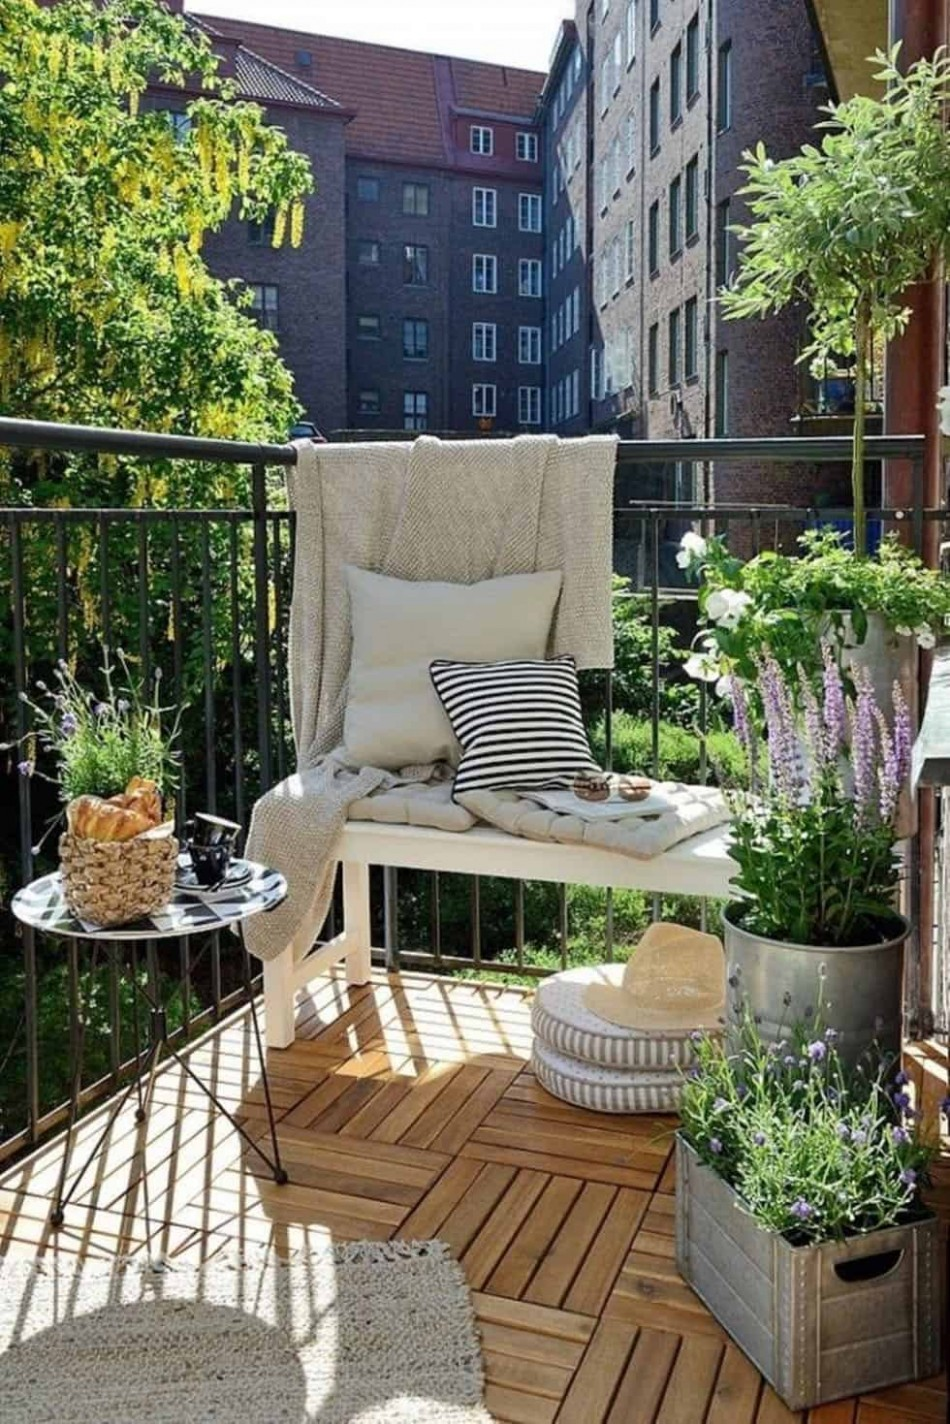 12 Super cool and breezy small balcony design ideas - Balcony Ideas For Apartments